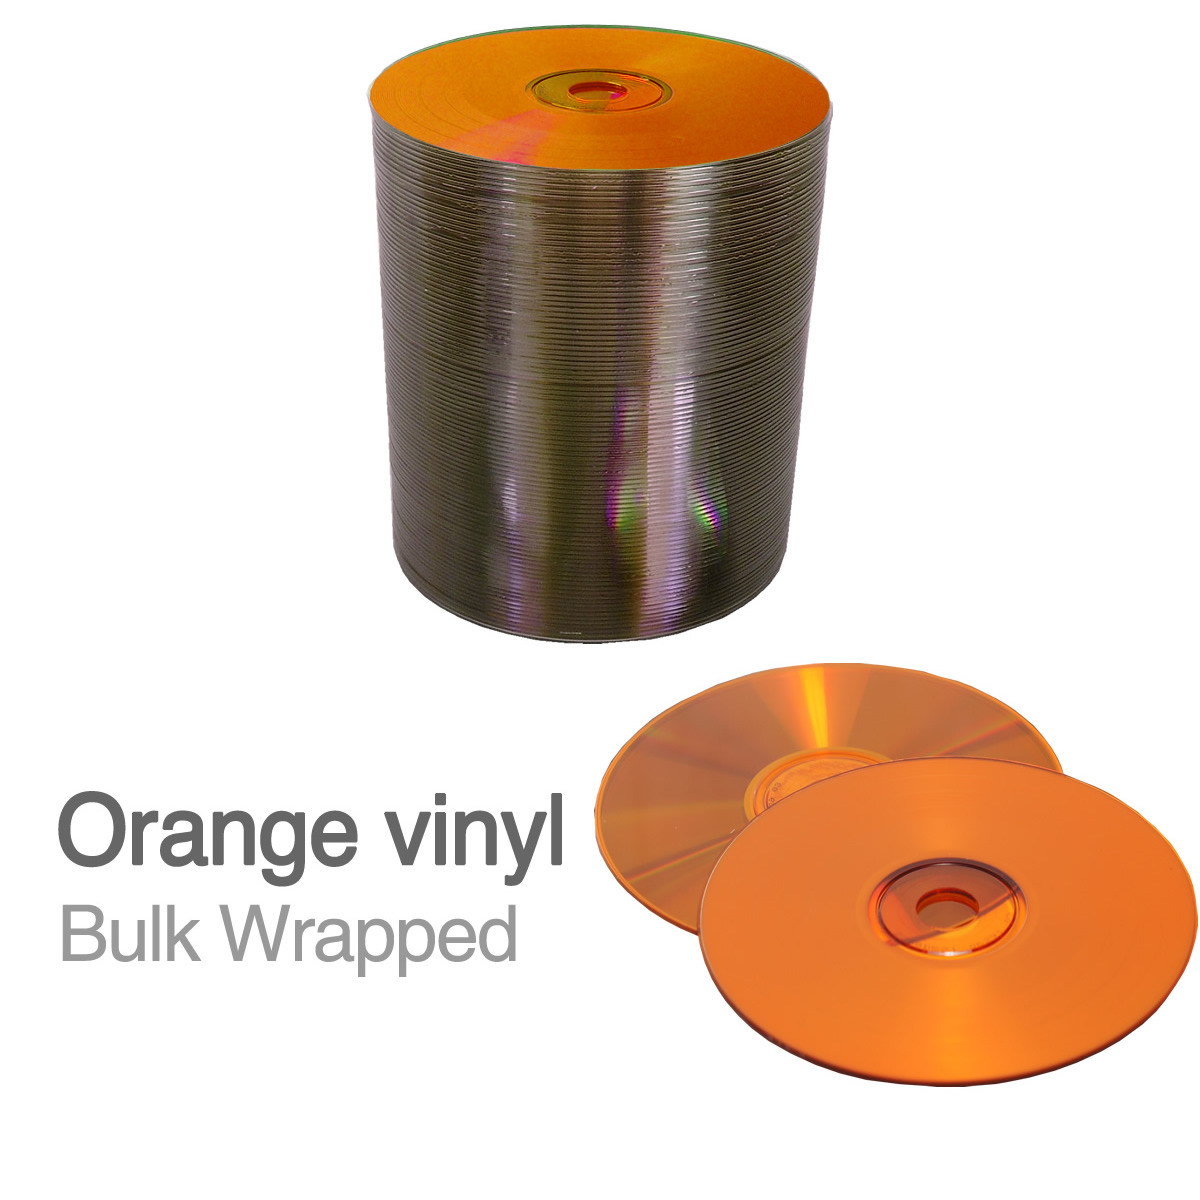 blank 12cm orange vinyl cd r 700mb bulk wrapped retro. Black Bedroom Furniture Sets. Home Design Ideas